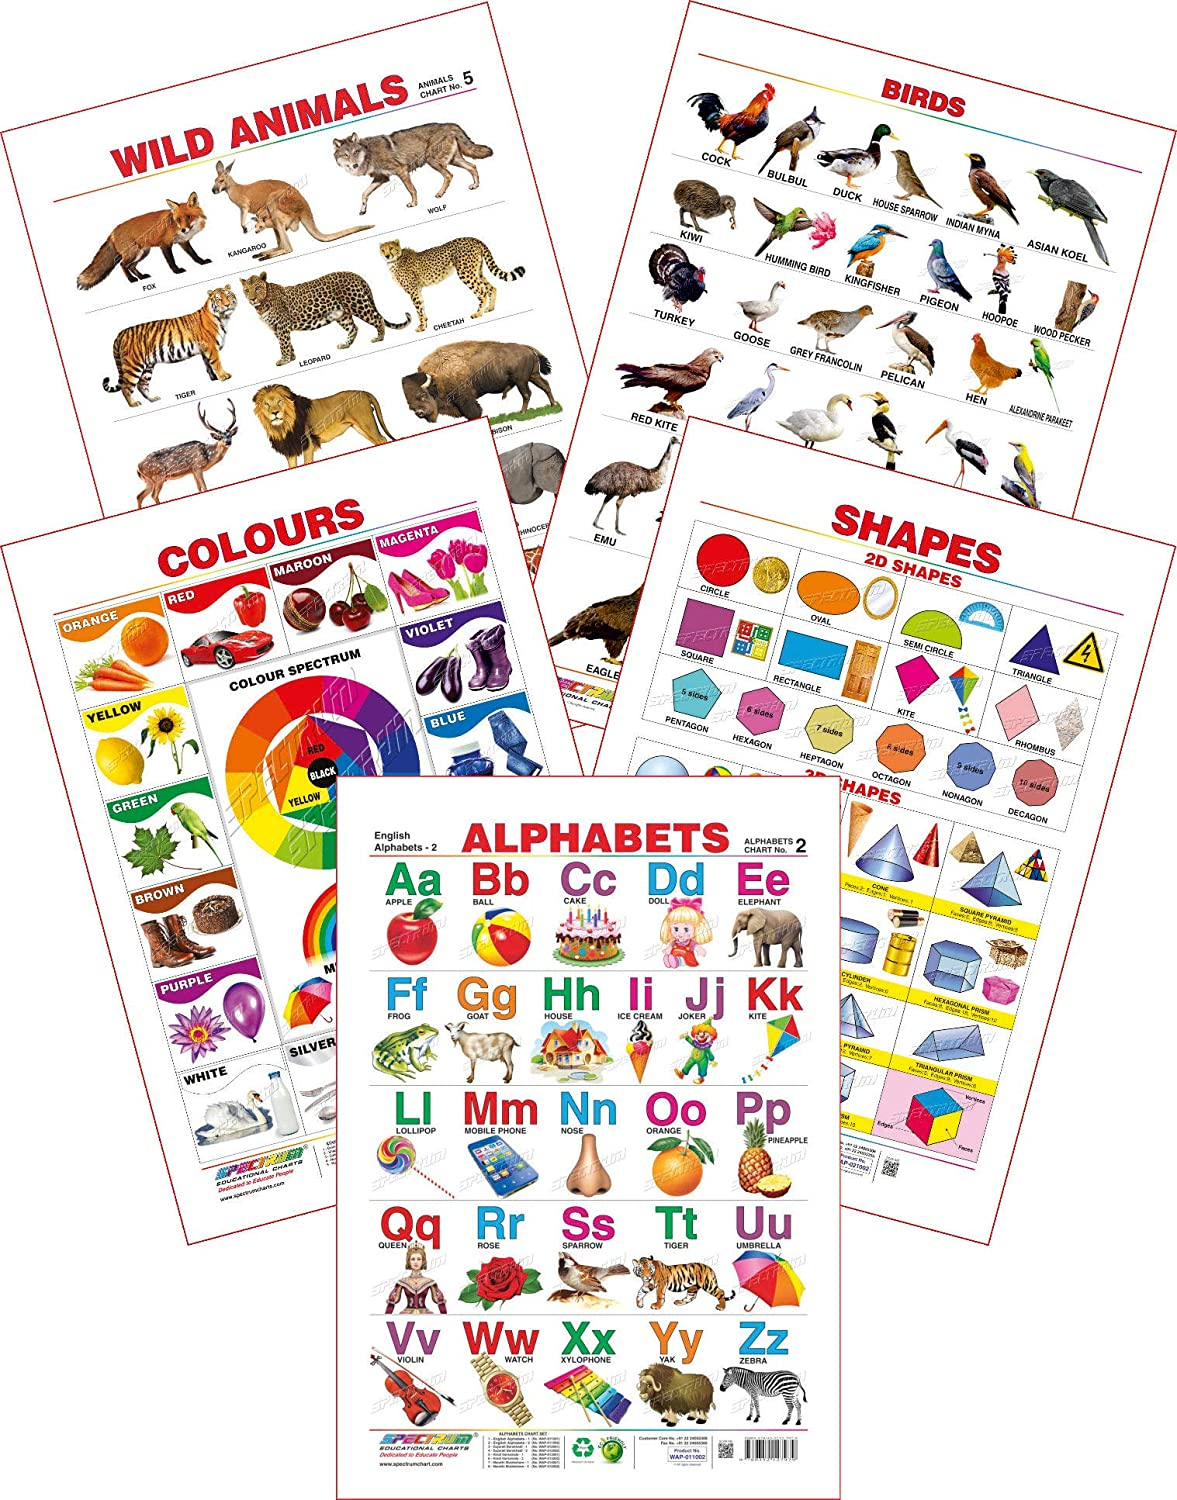 Spectrum Educational Wall Charts (Set of 5) :(English Alphabets